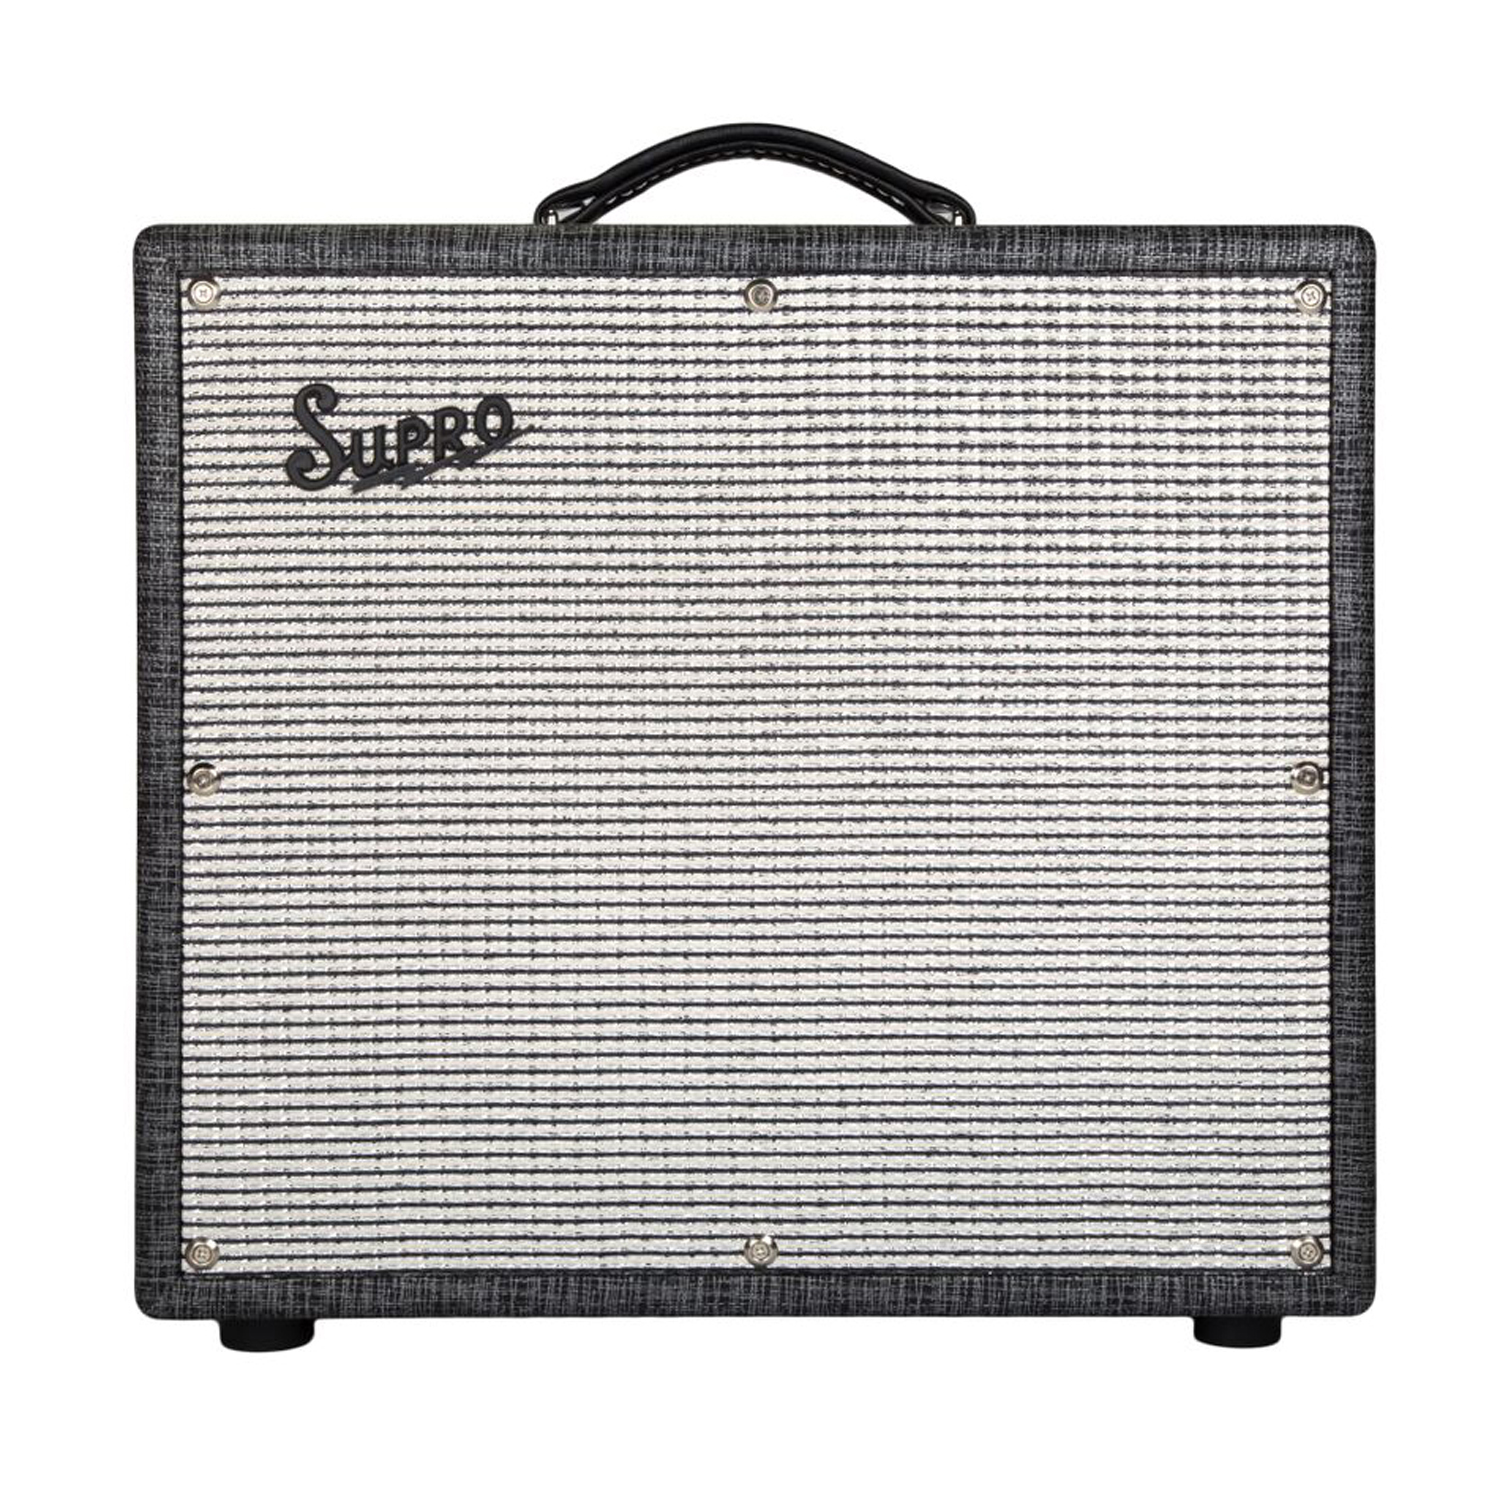 supro 1699r statesman 1x12 50w guitar combo amp the guitar hangar. Black Bedroom Furniture Sets. Home Design Ideas